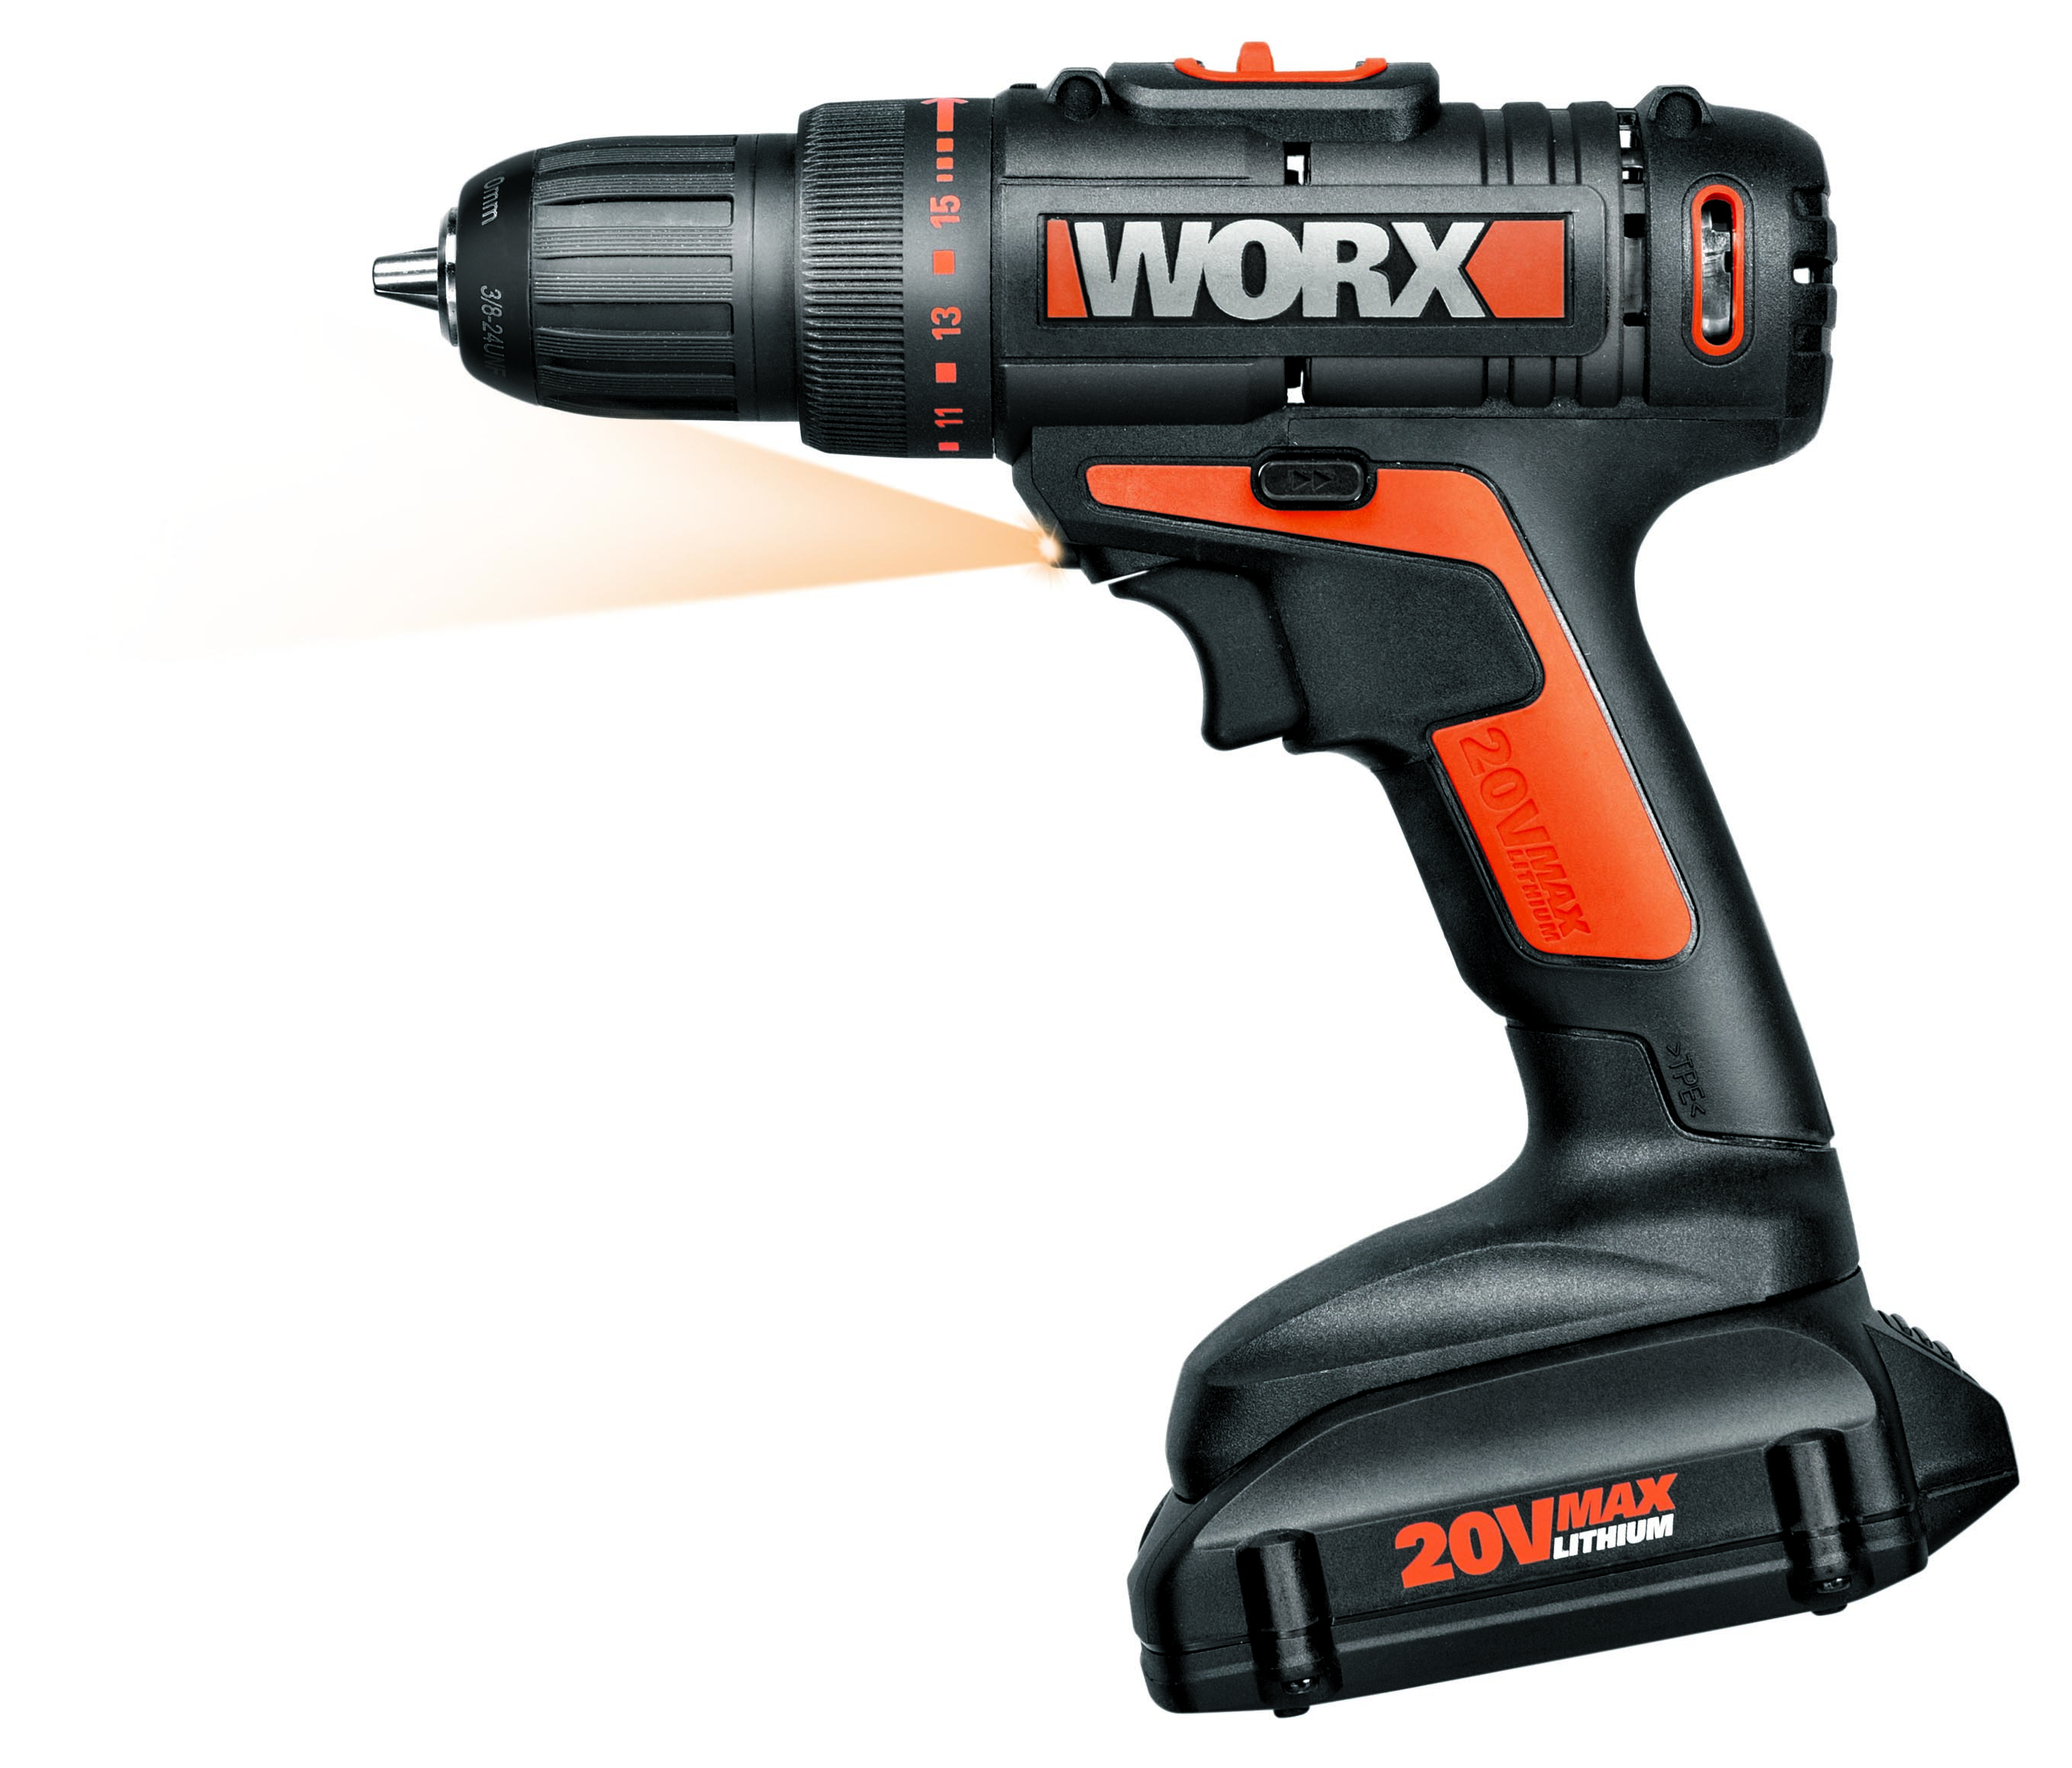 New Worx Powershare System Enables Single 20 Volt Battery